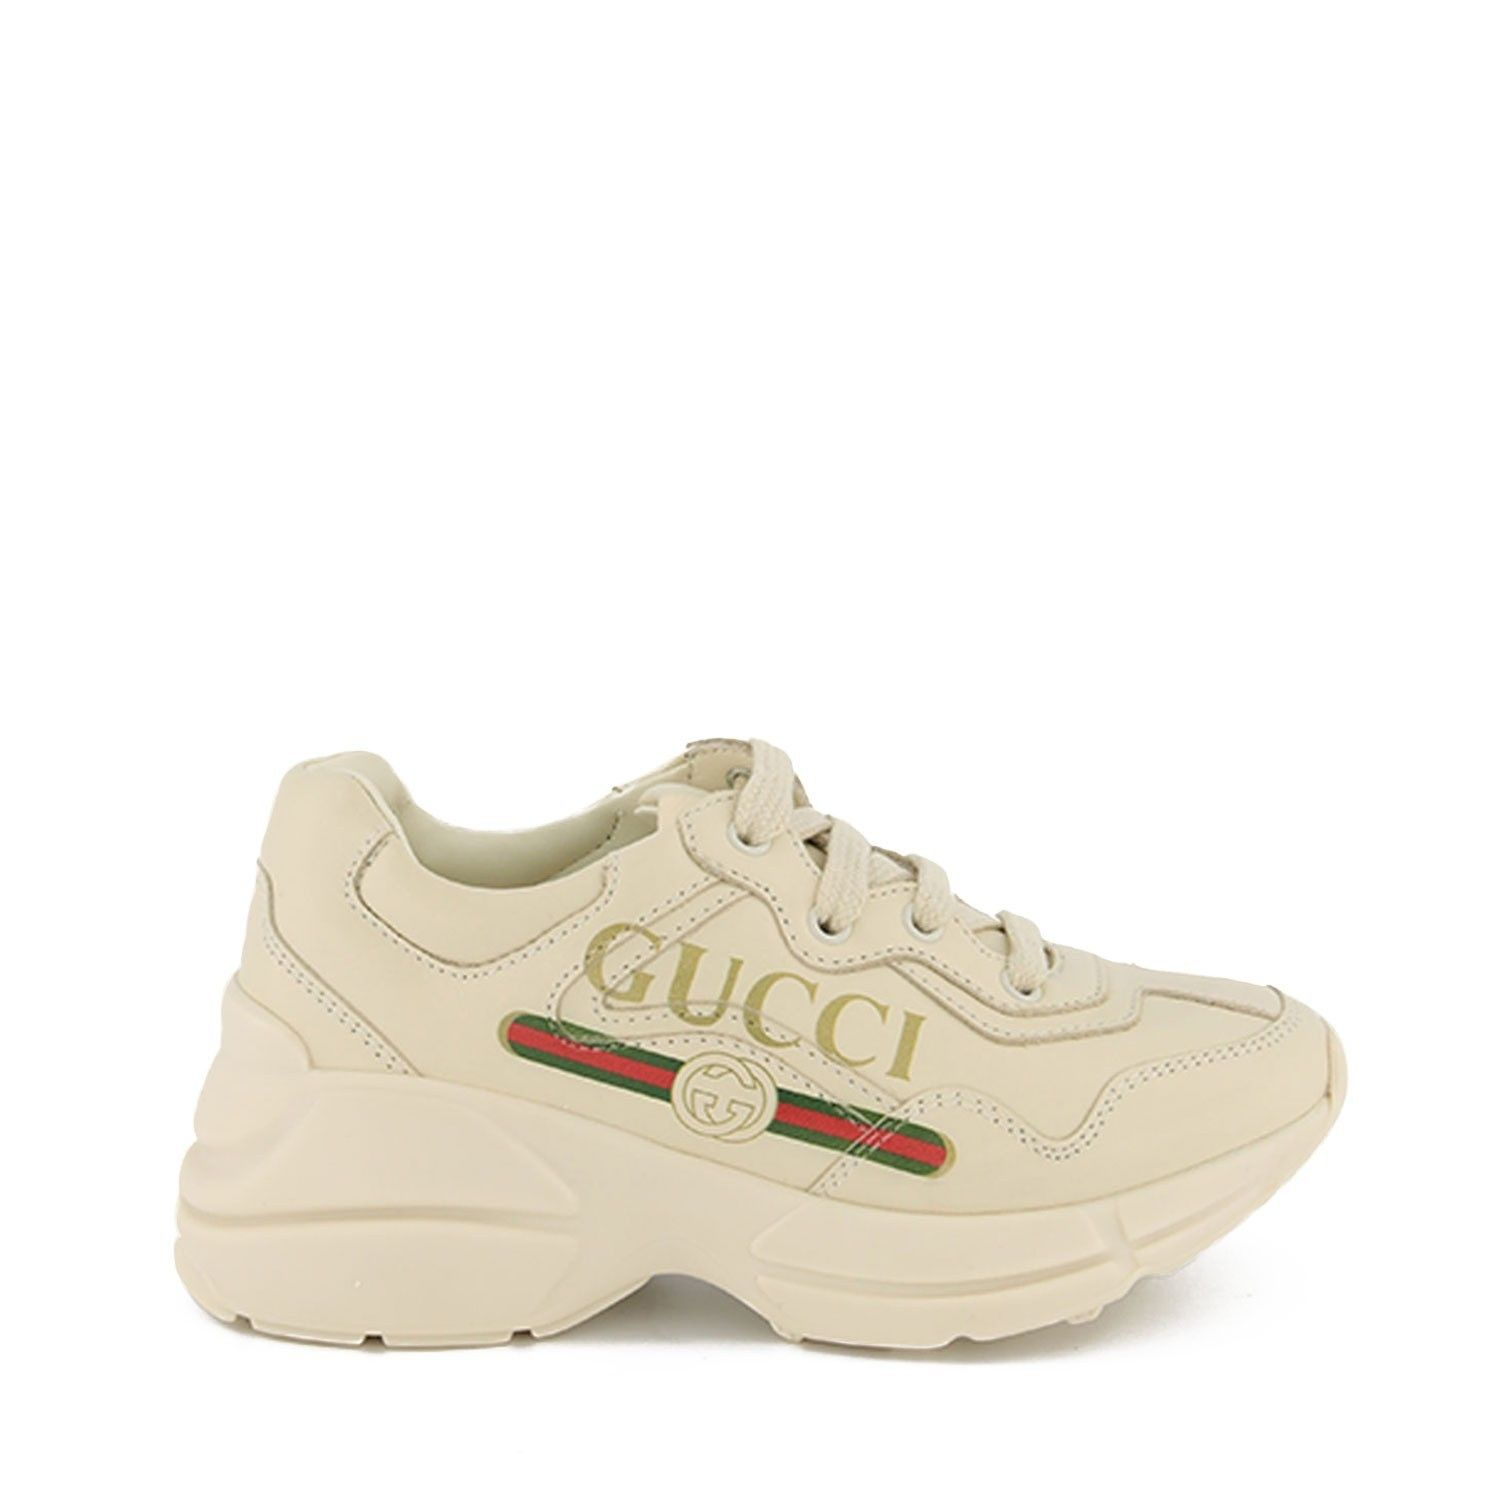 Picture of Gucci 579317 kids sneakers off white